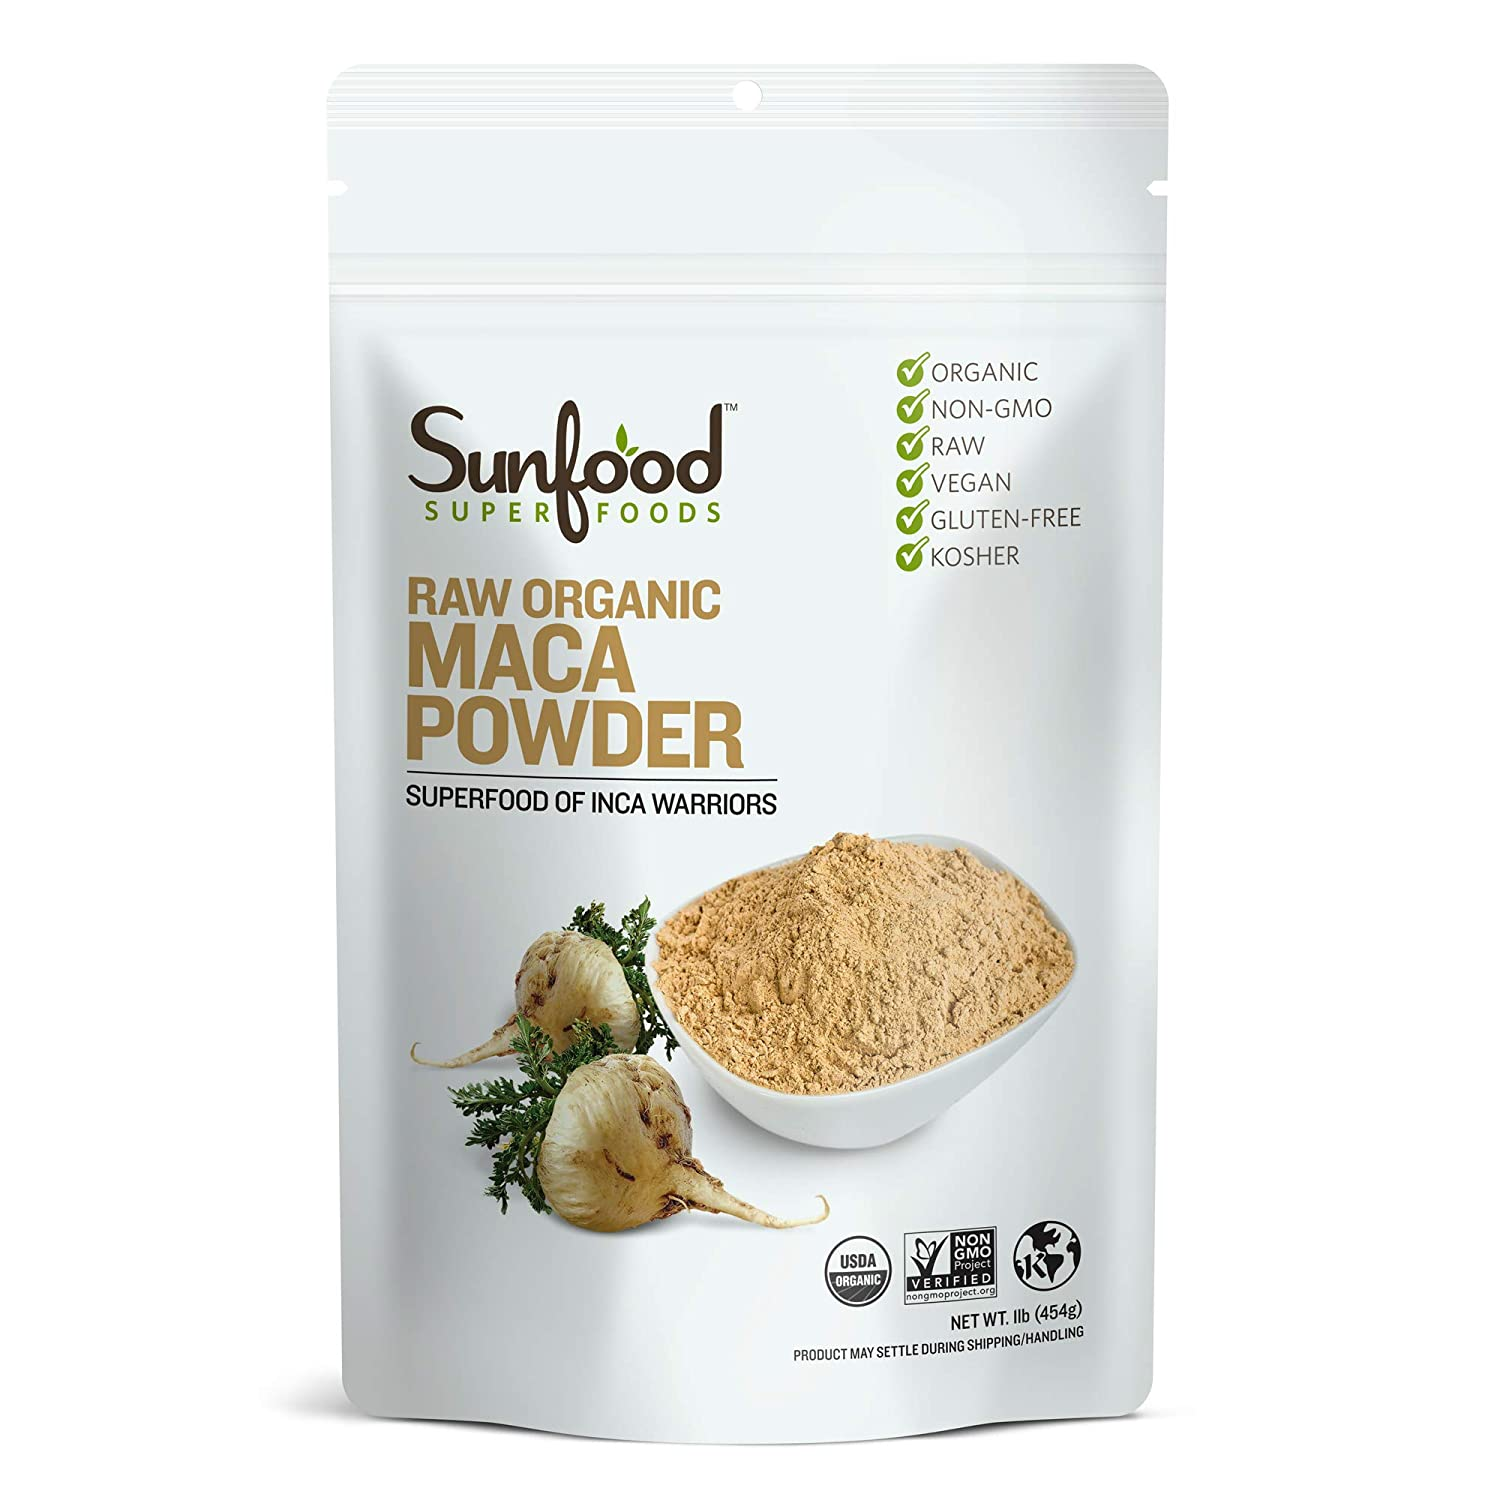 Sunfood Maca Powder, 1 Pound, Organic, Raw